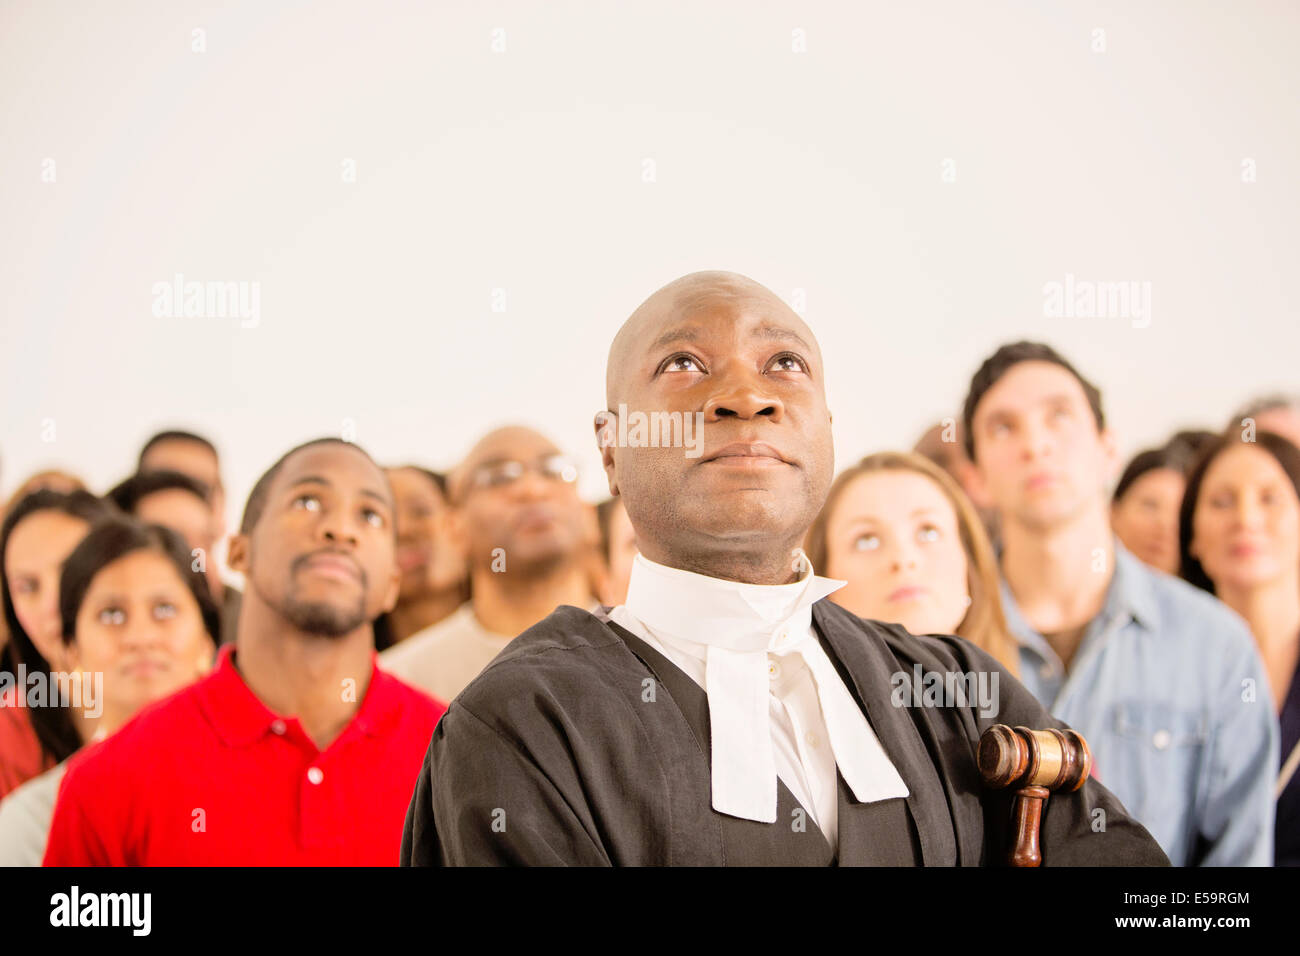 Judge and crowd looking up - Stock Image